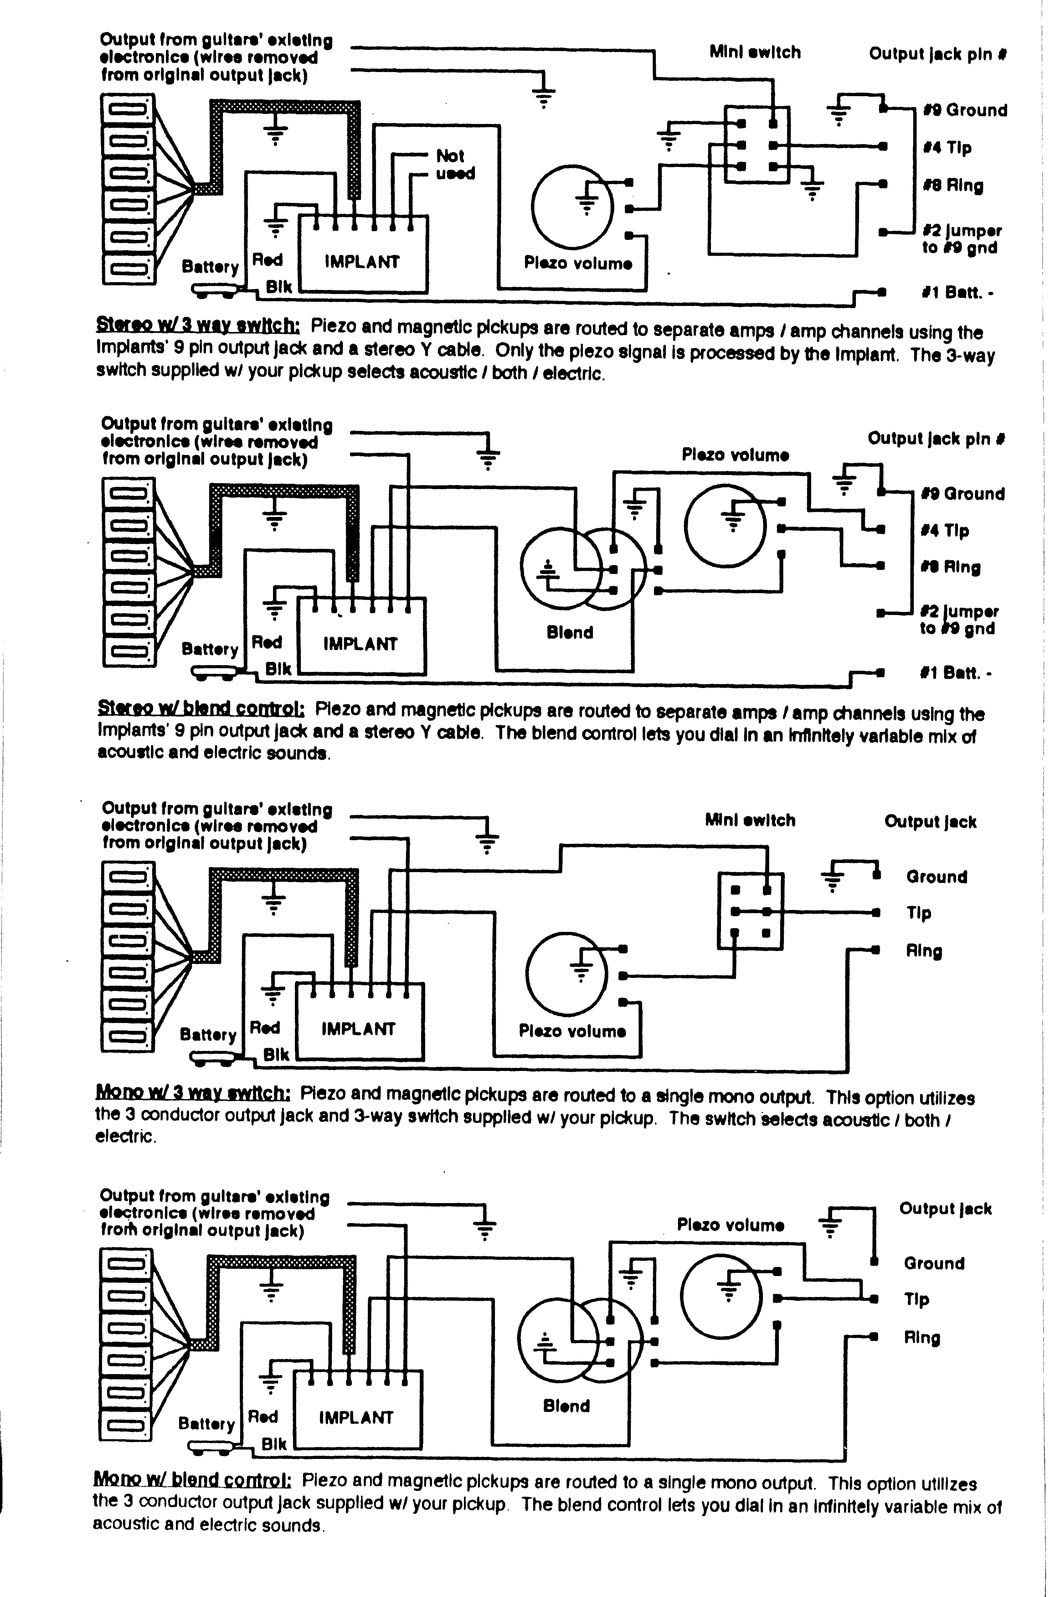 Click image for larger version. Name: Implant-Preamp-Instructions-diagramps.